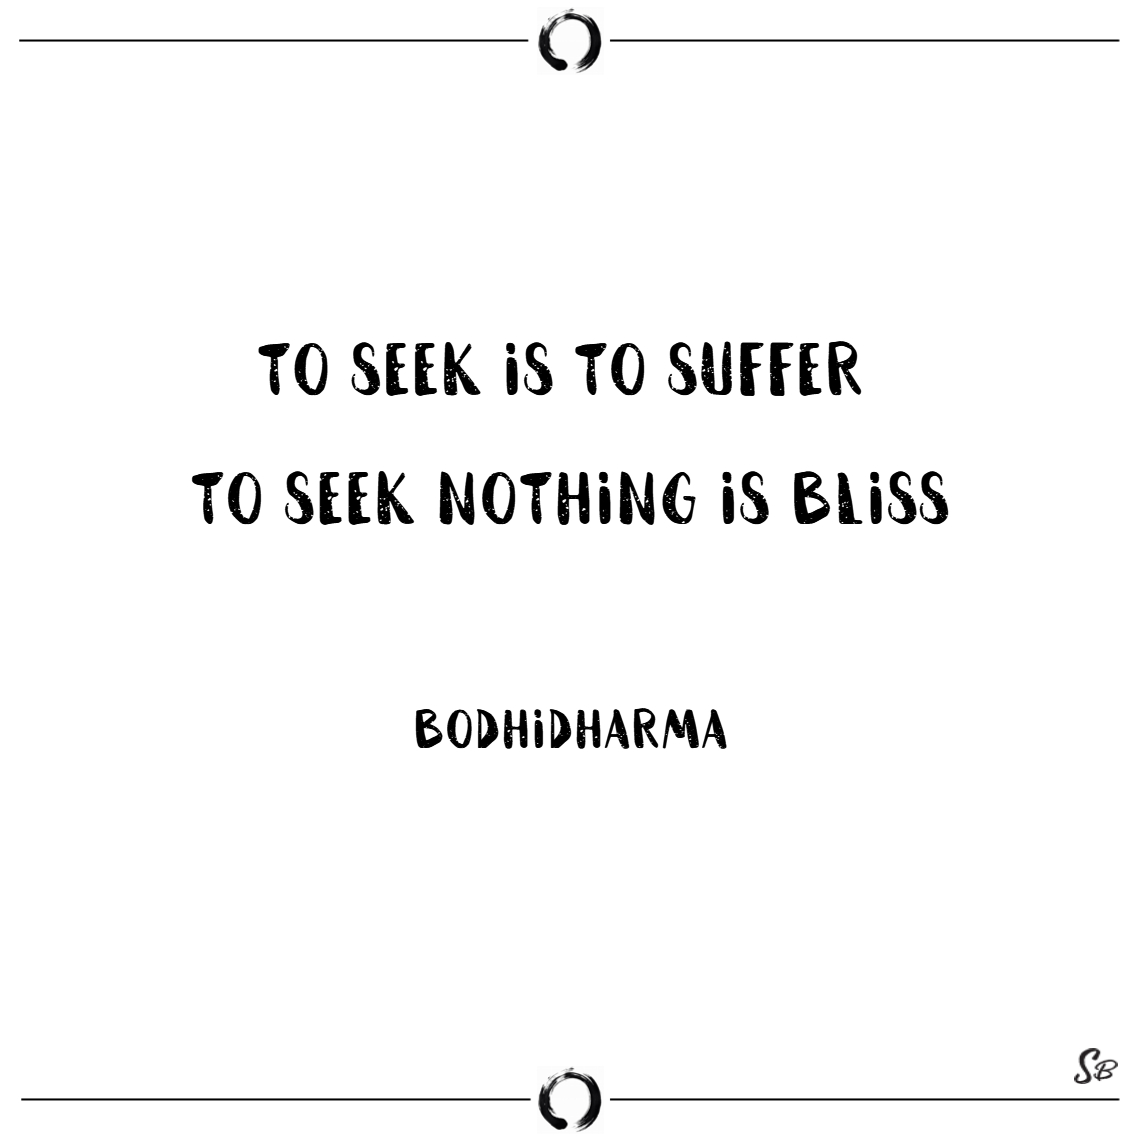 To seek is to suffer. to seek nothing is bliss. –